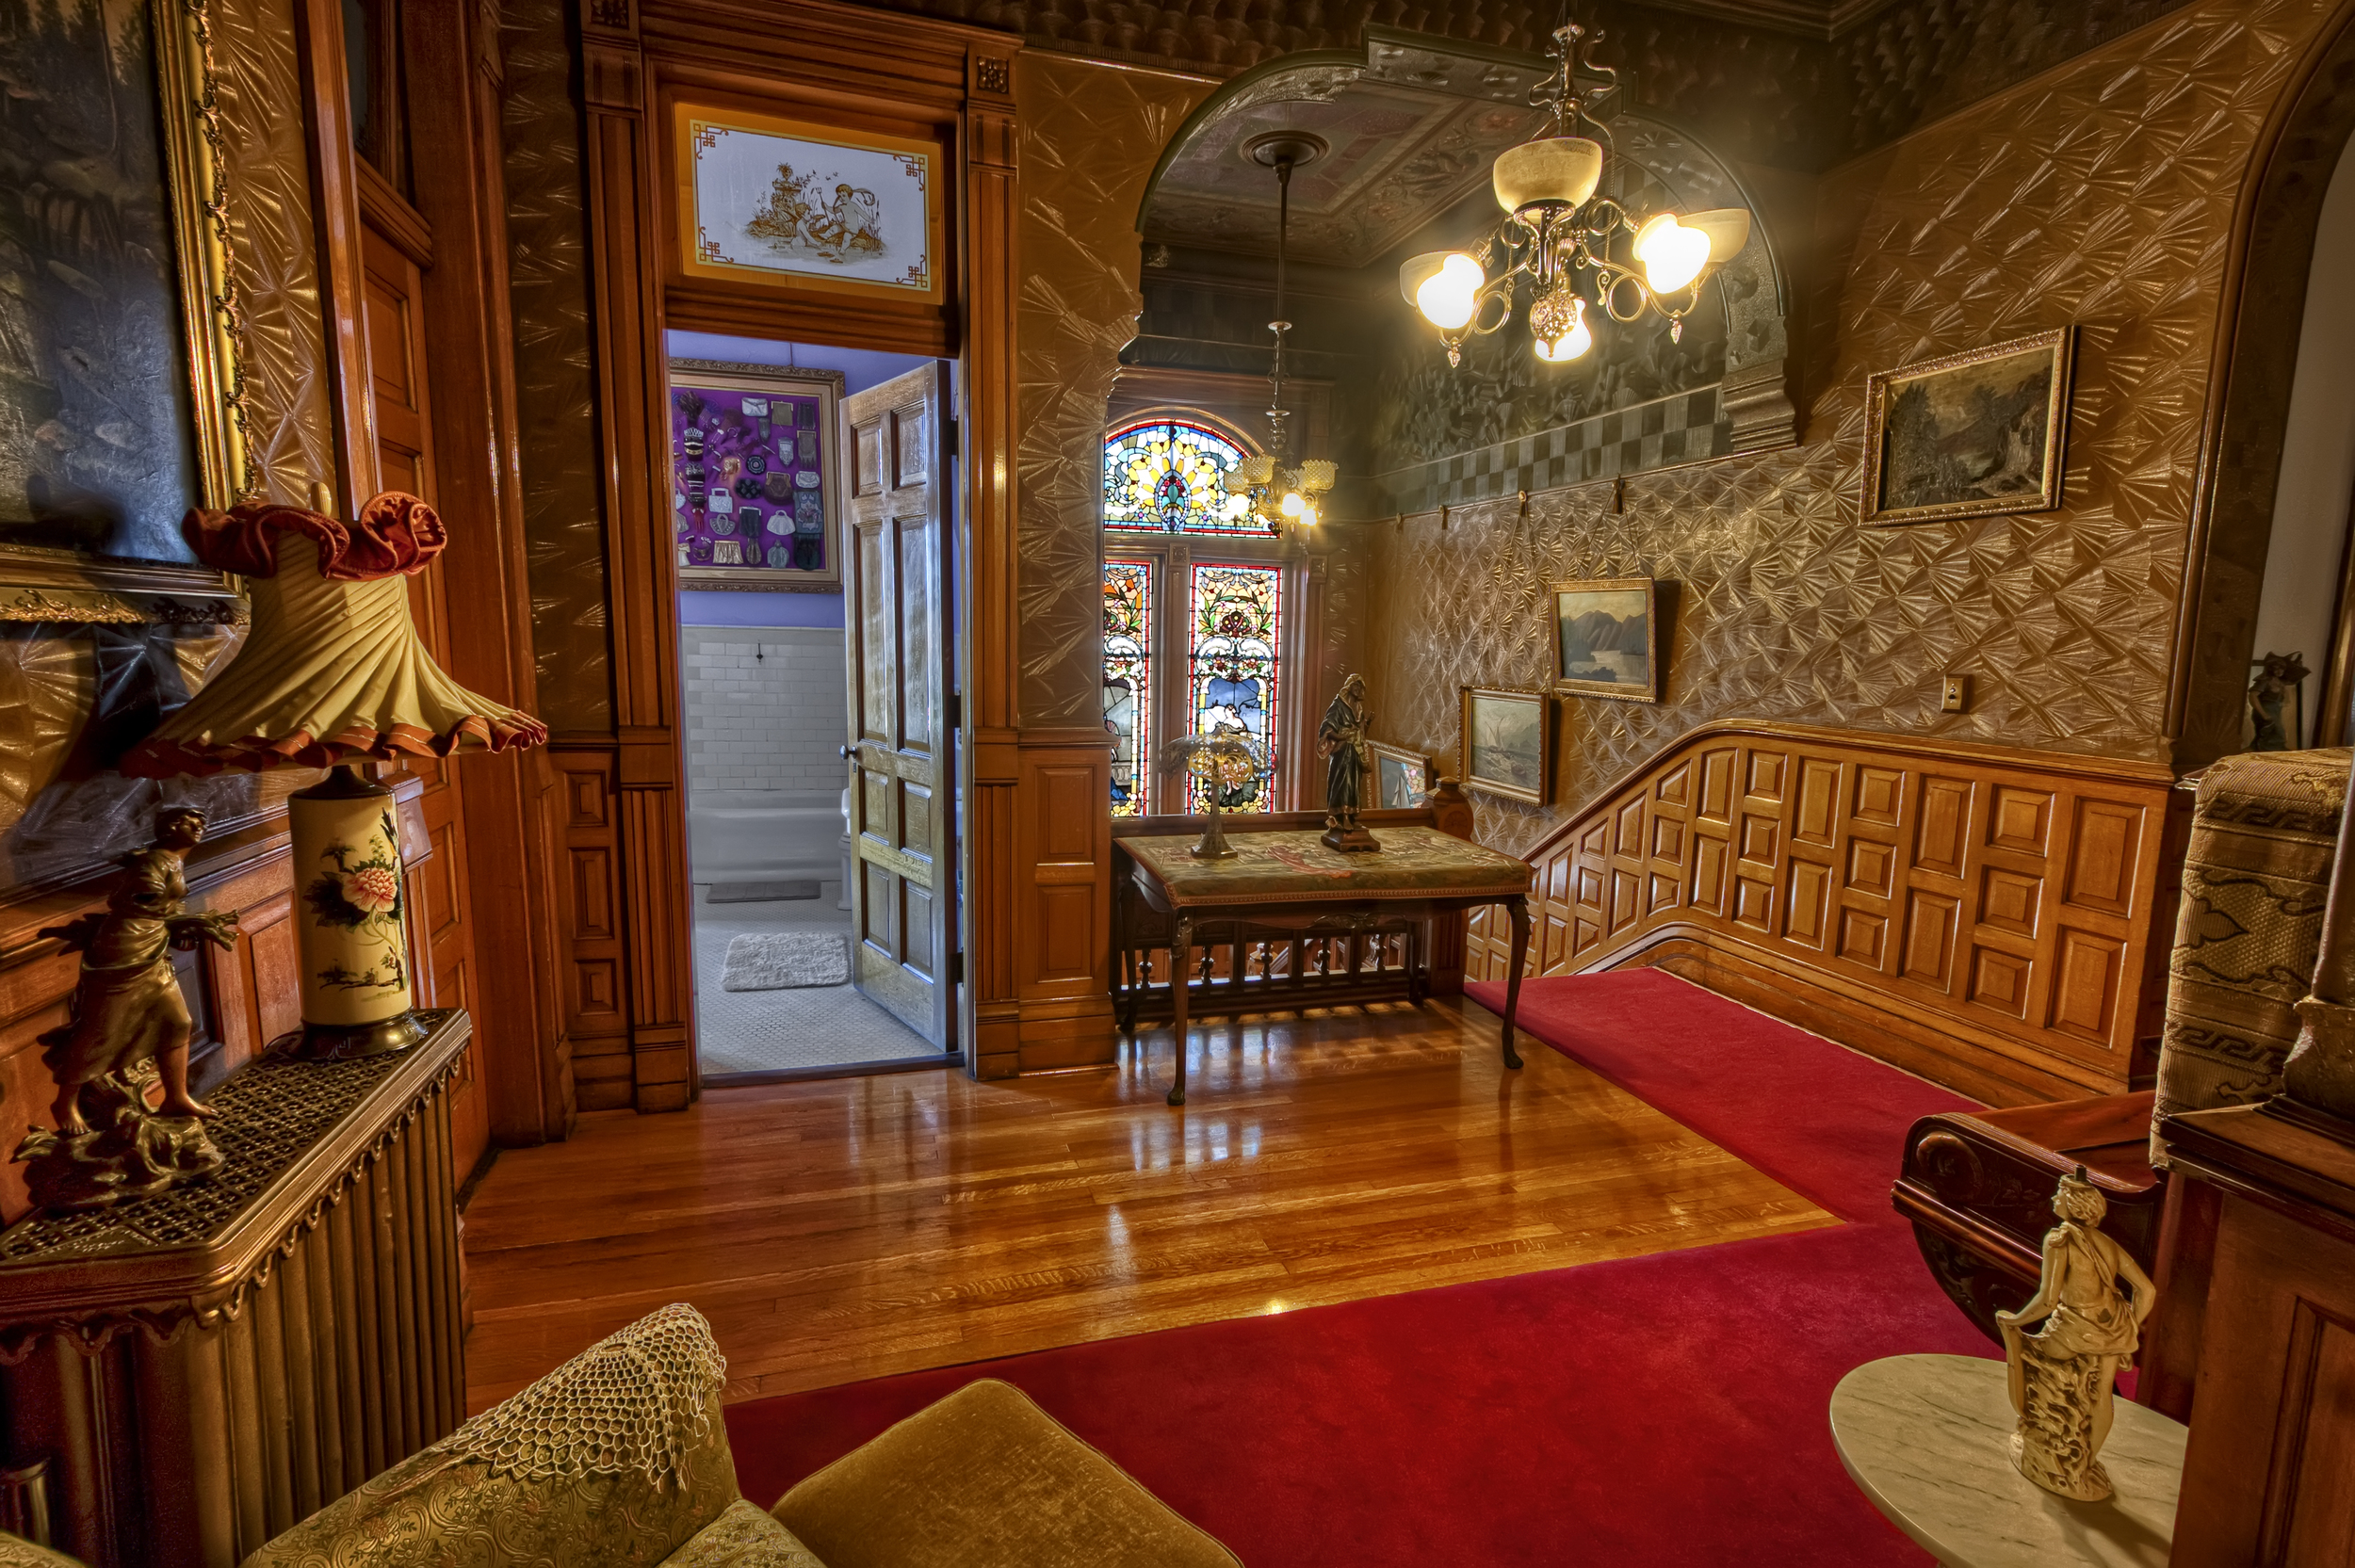 Top of grand staircase, Copper King Mansion, the W.A. Clark home in Butte, Montana. c. Daniel Hagerman. Prints for sale at http://fineartamerica.com/art/all/copper+king+mansion/all.